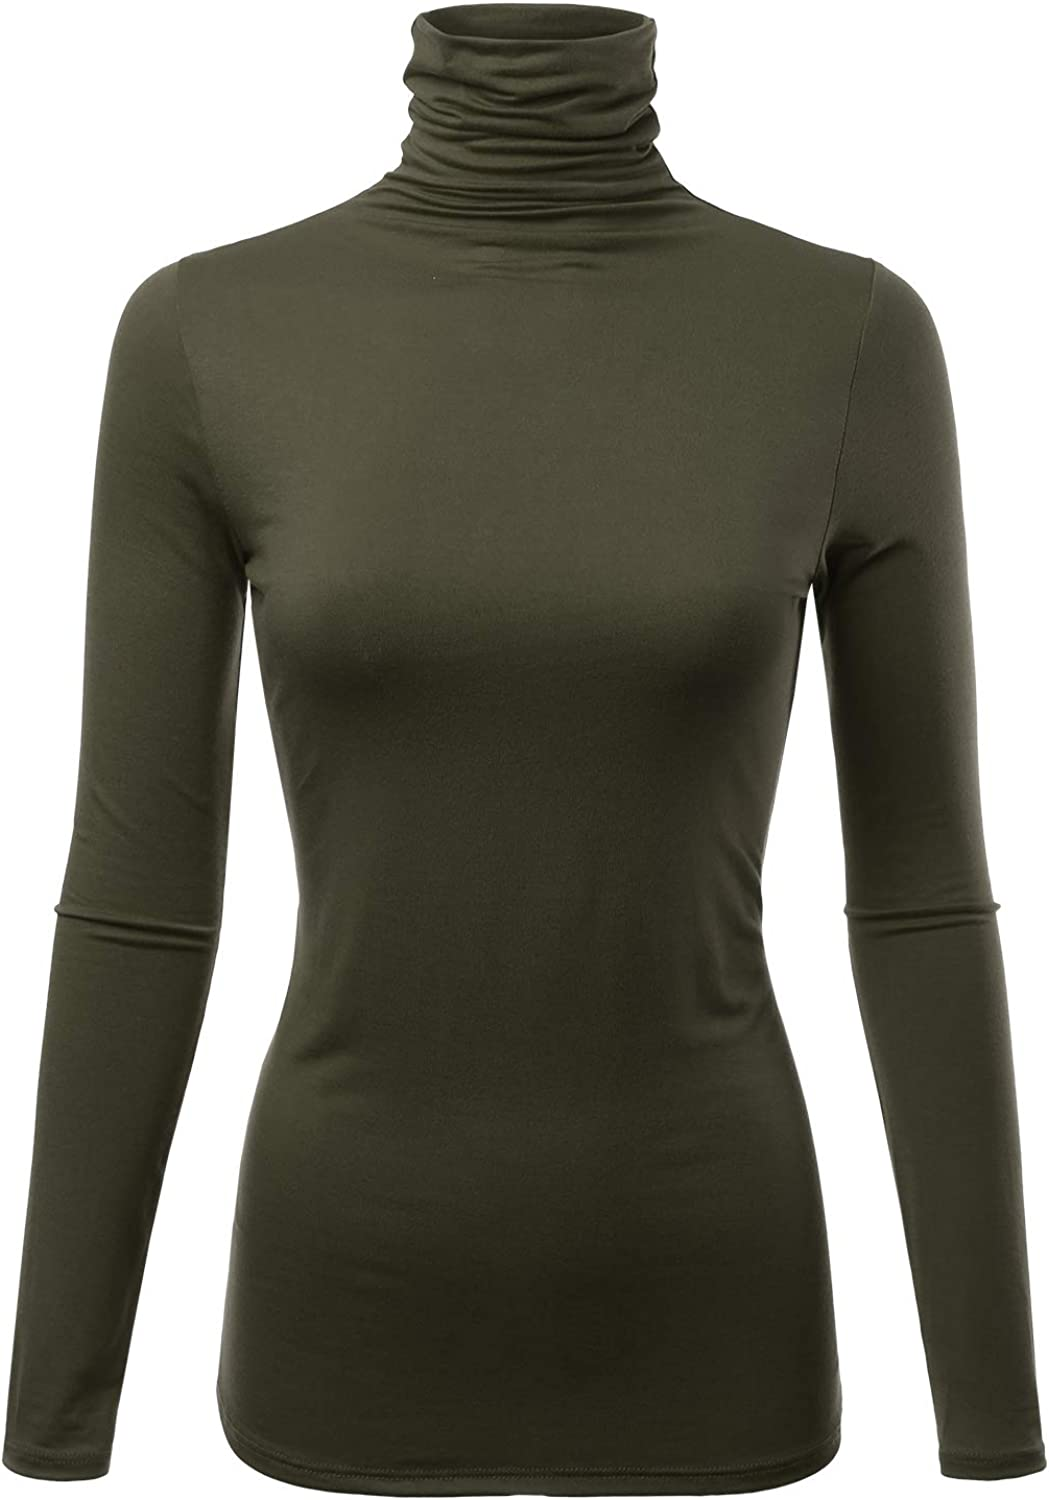 FASHIONOLIC Womens Premium Long Sleeve Turtleneck Lightweight Pullover Top Sweater (S-3X, Made in USA)